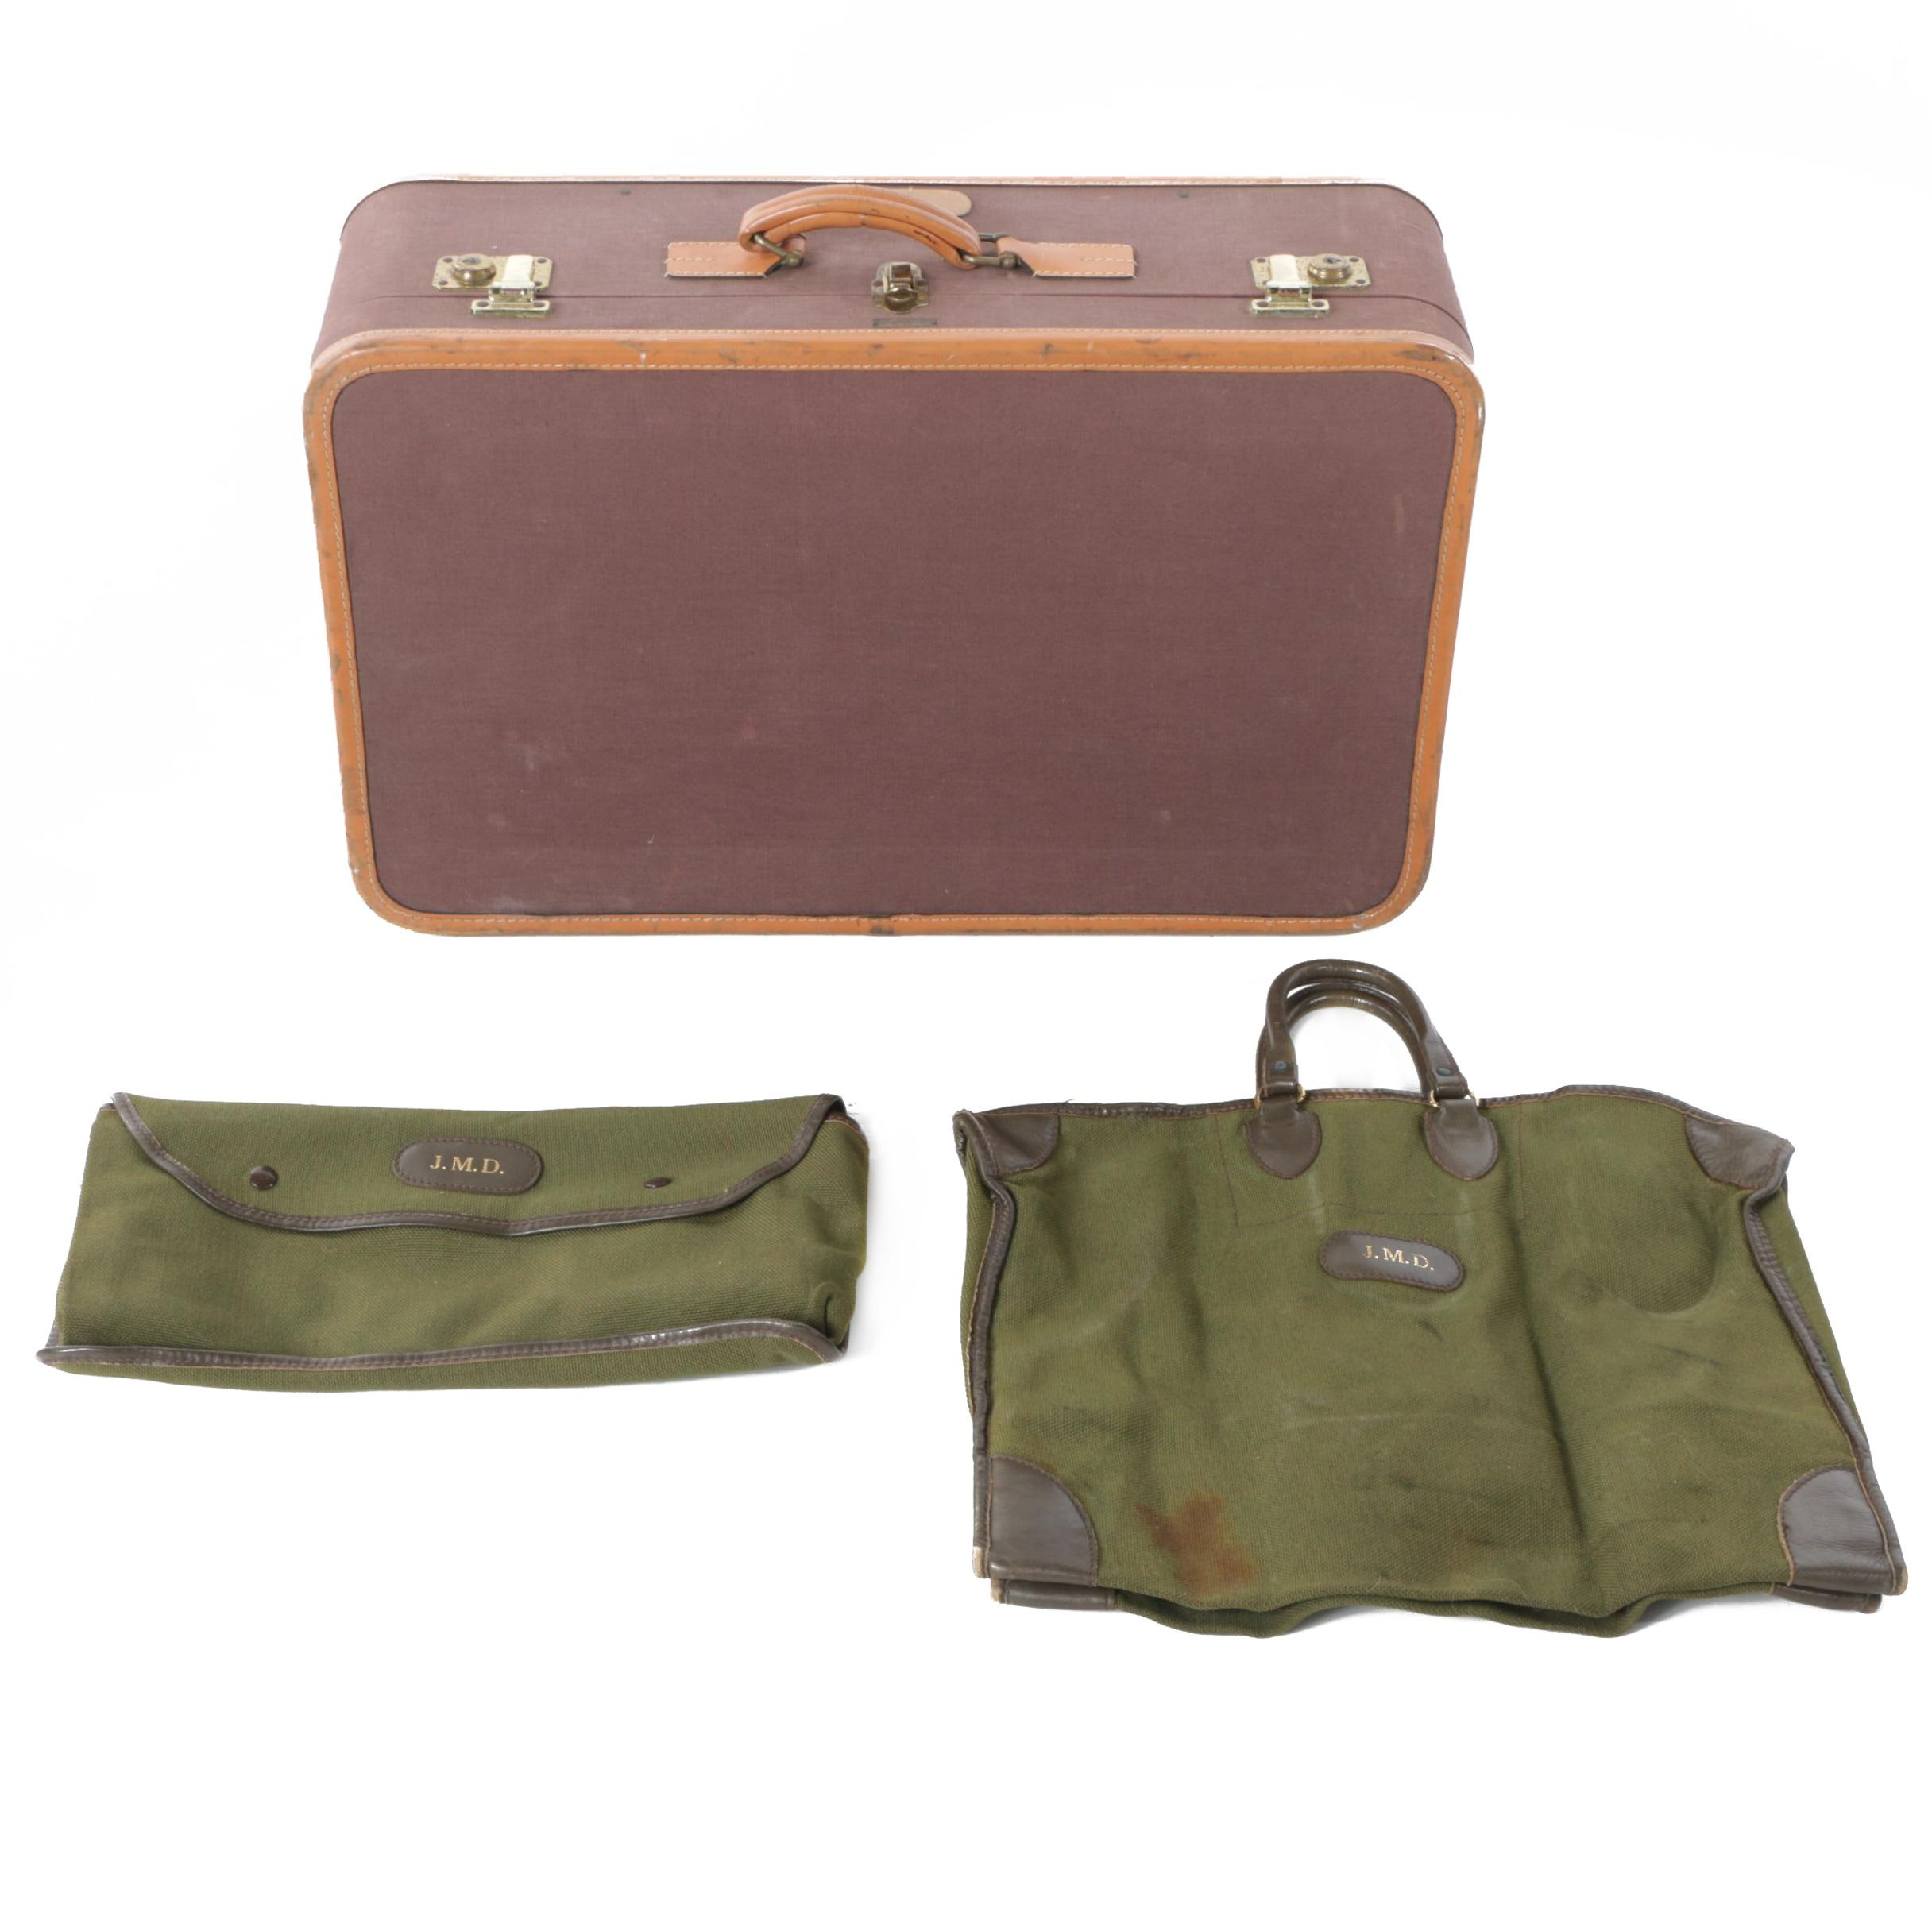 Vintage T. Anthony Ltd. Suitcase and Travel Accessory Bags